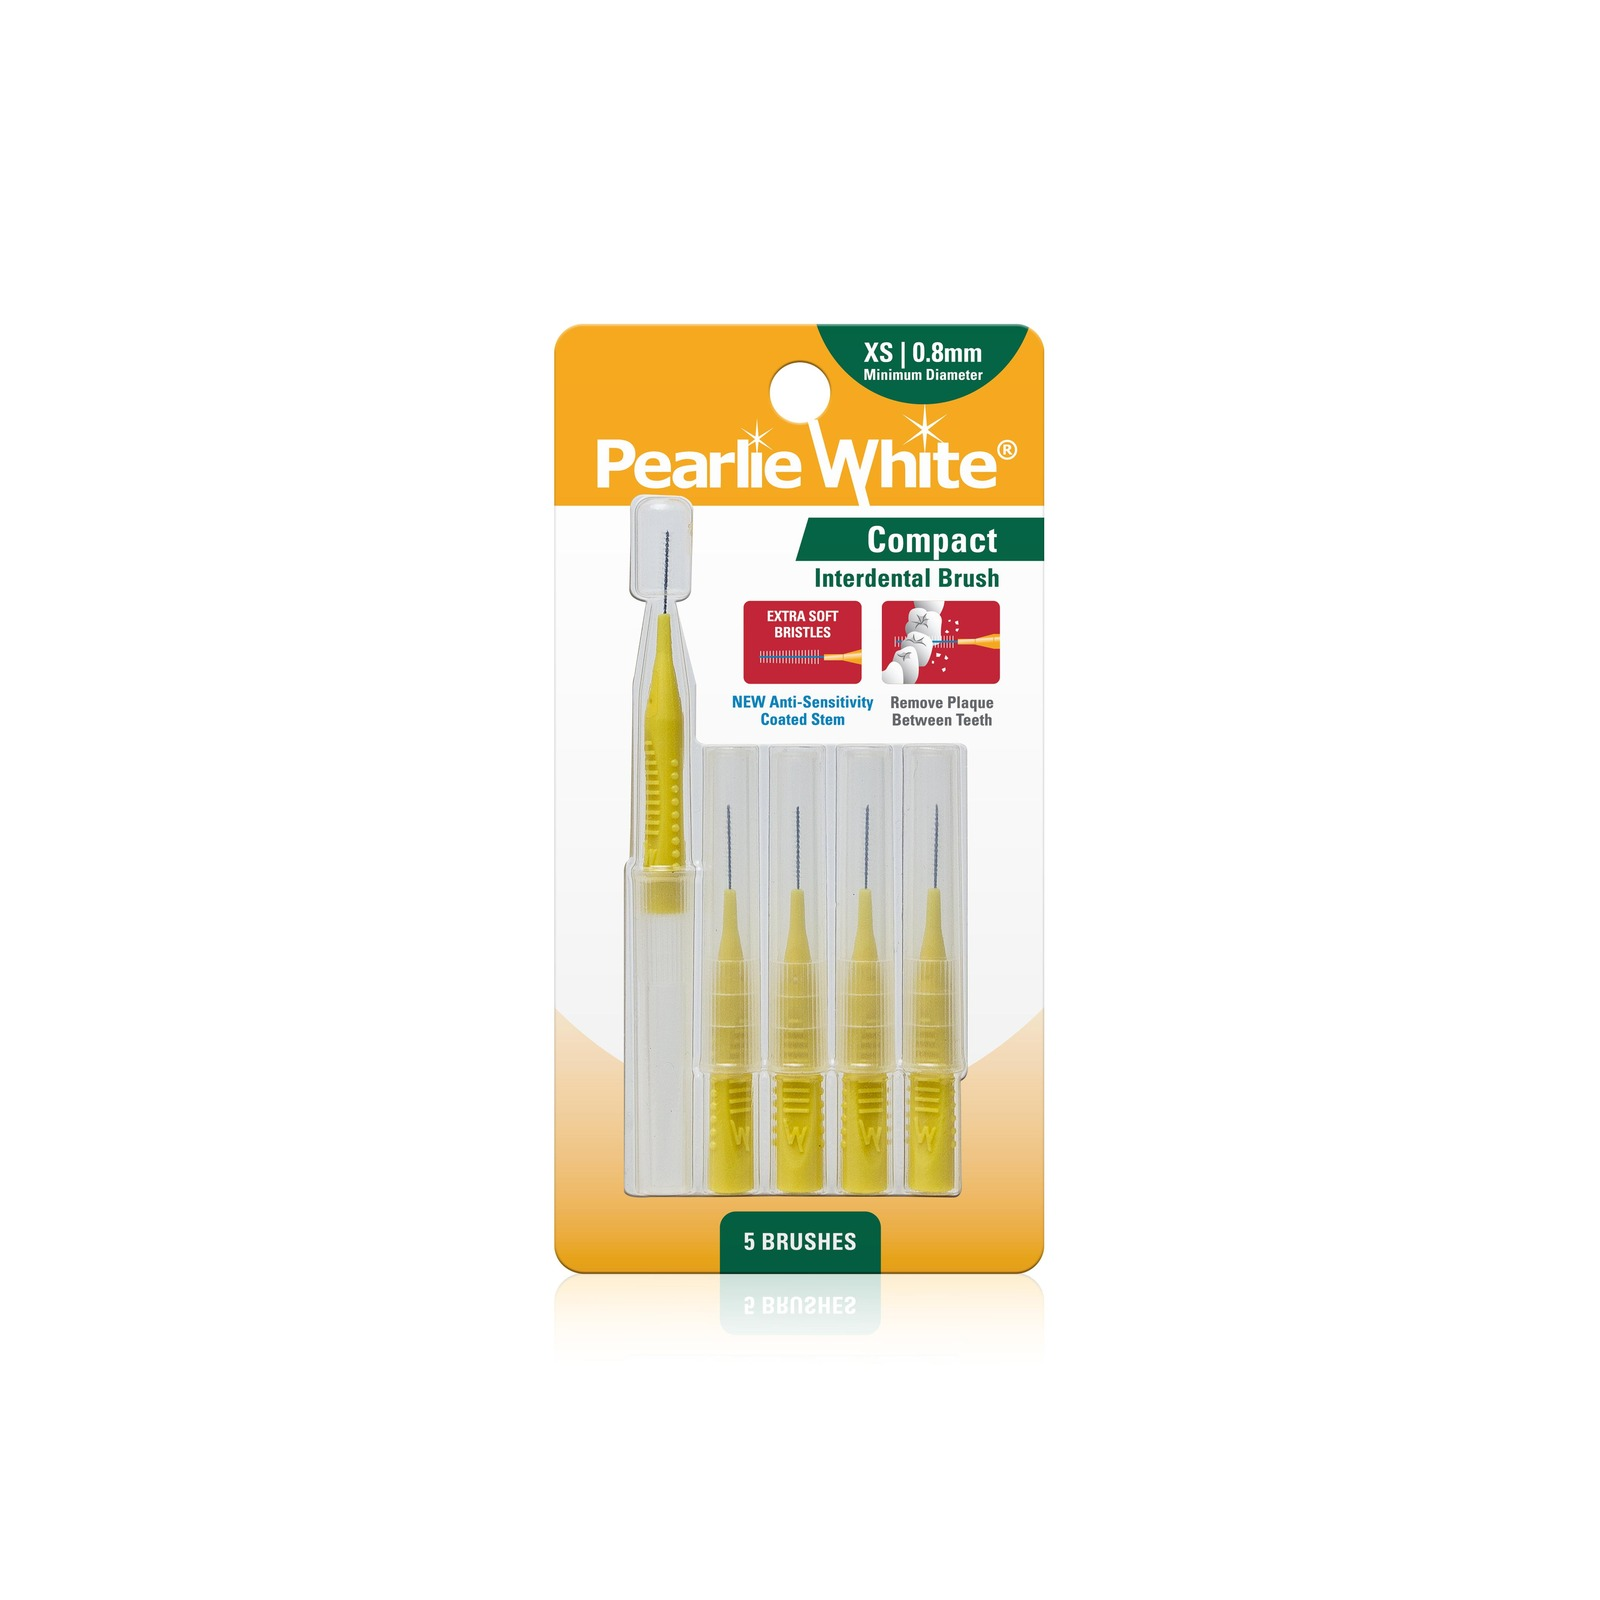 Pearlie White Compact Interdental Brushes XS 0.8mm